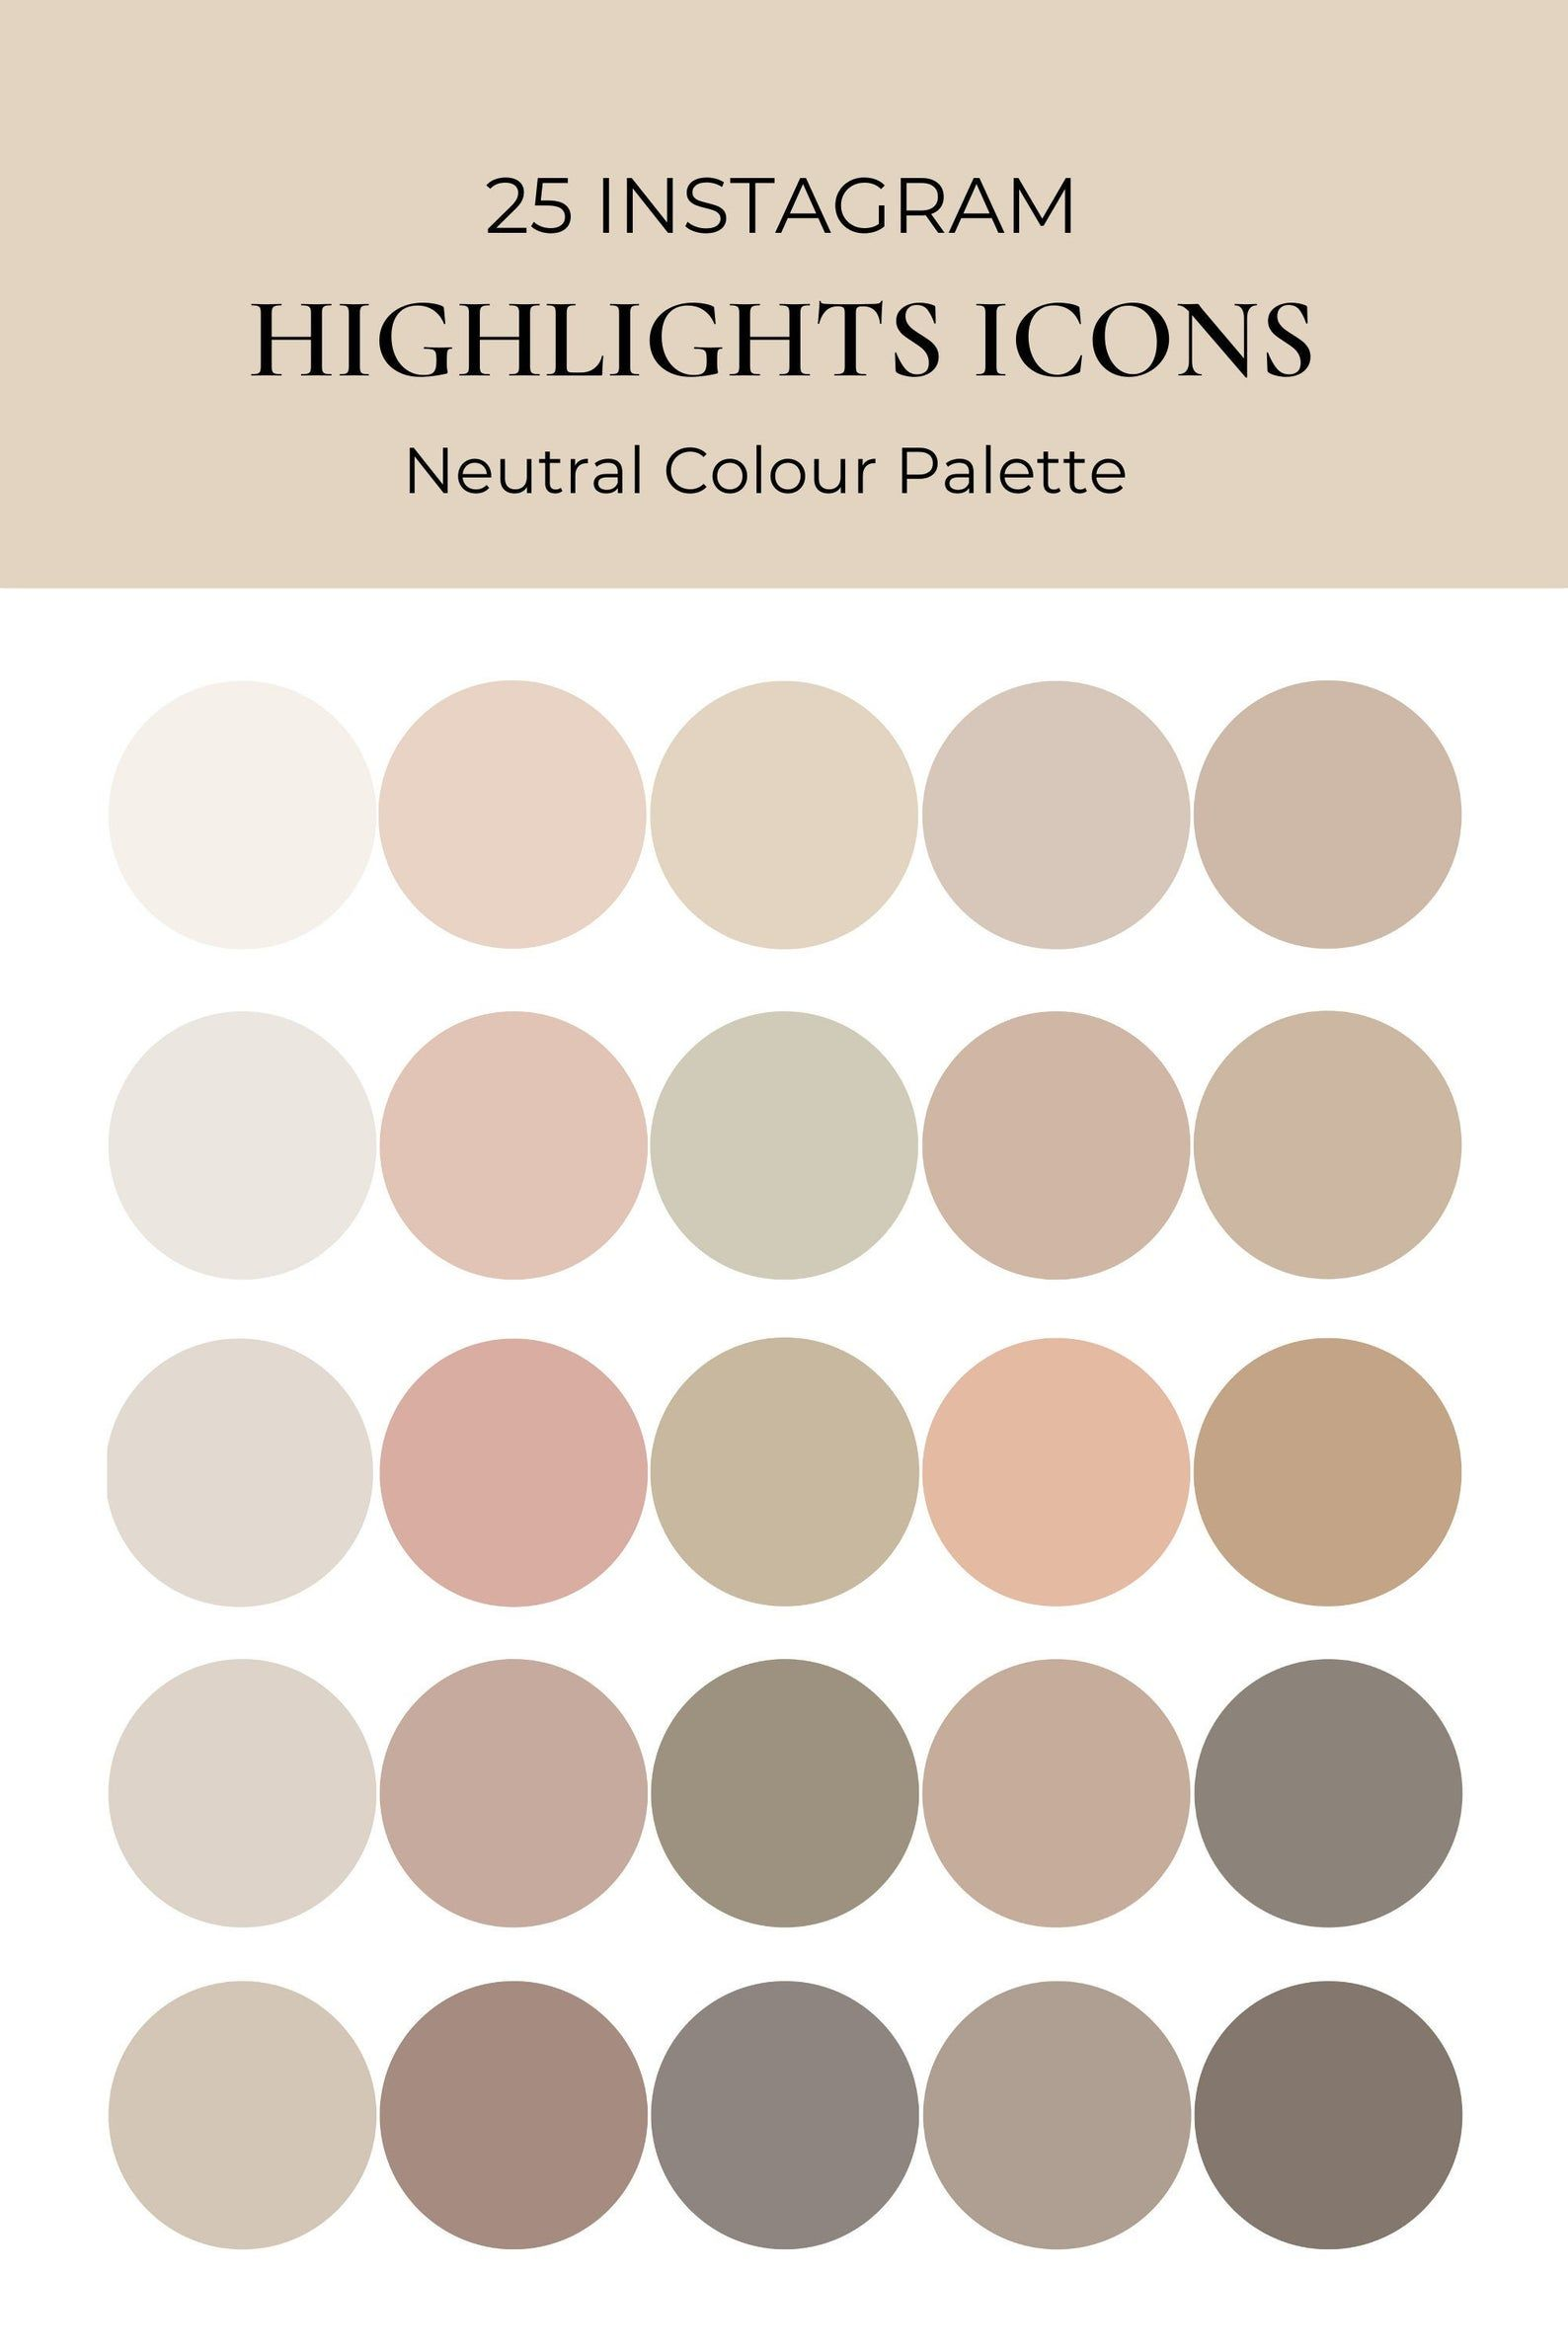 Warm neutral colour highlight cover | Boho nude colour tone Instagram icon | Solid colour blogger influencer highlight | 25 Nude story cover